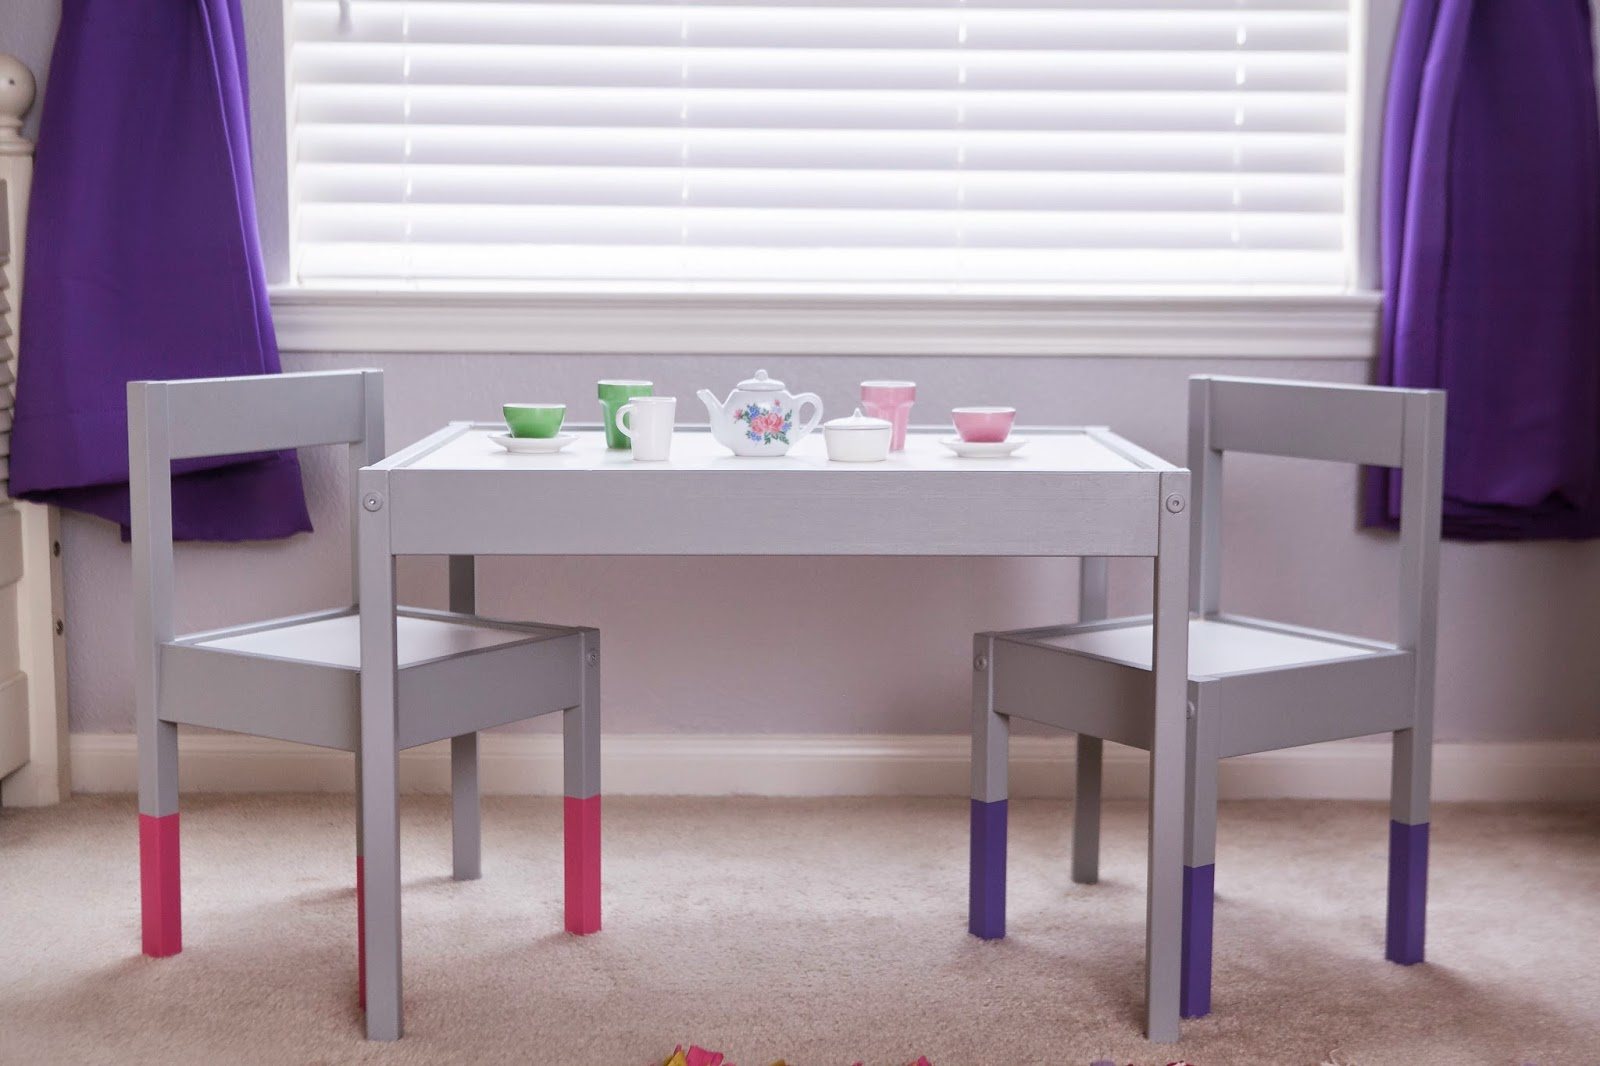 Meijer Bean Bag Chair Desk Posture Corrector Ikea Kids Table Set Best Rainbow And Chairs